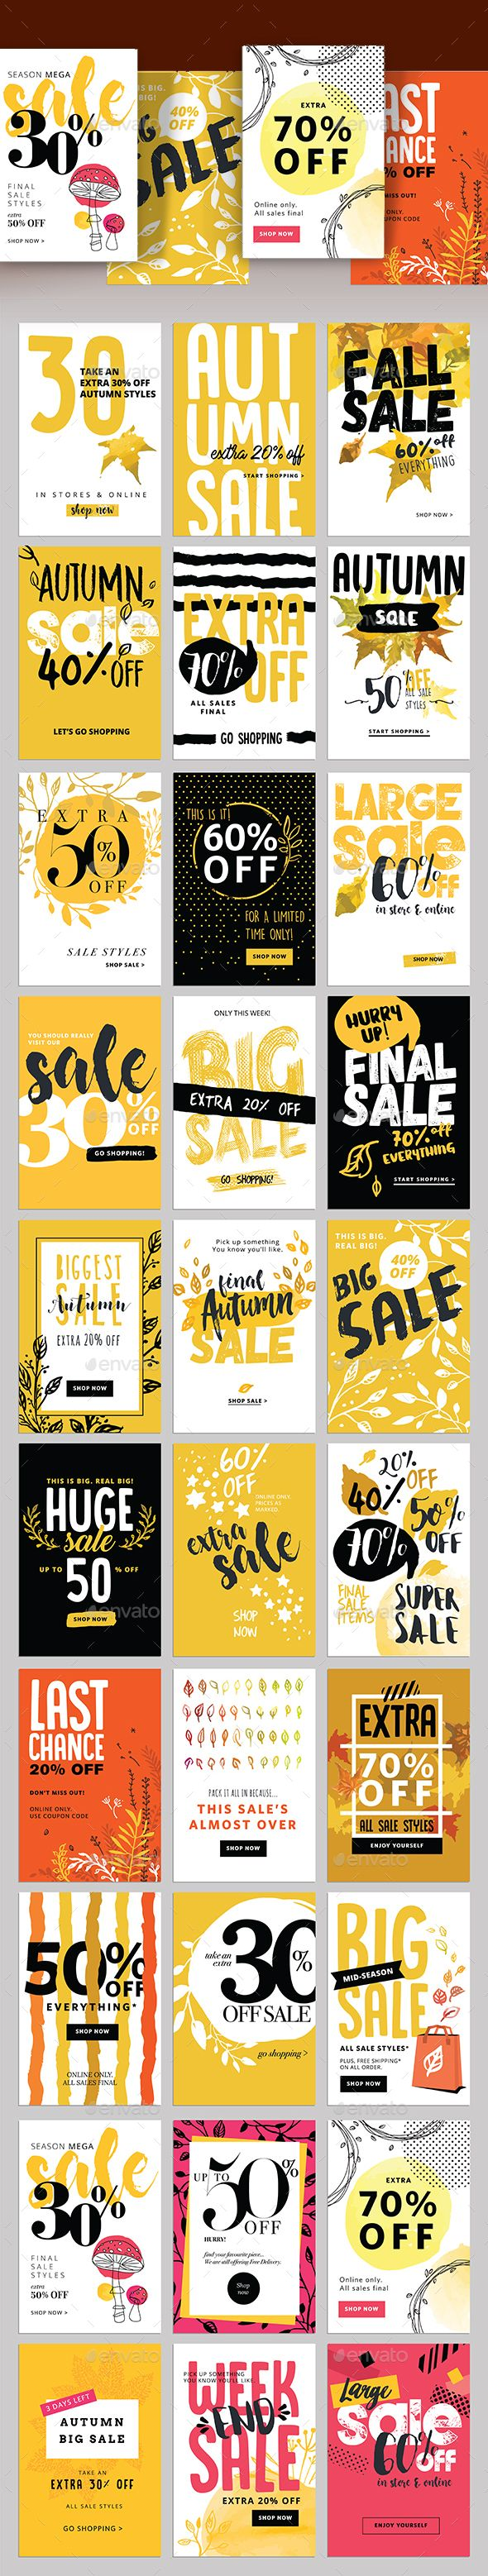 Advertising Poster Templates Pleasing 68 Best Creative Layouts Images On Pinterest  Page Layout Graph .